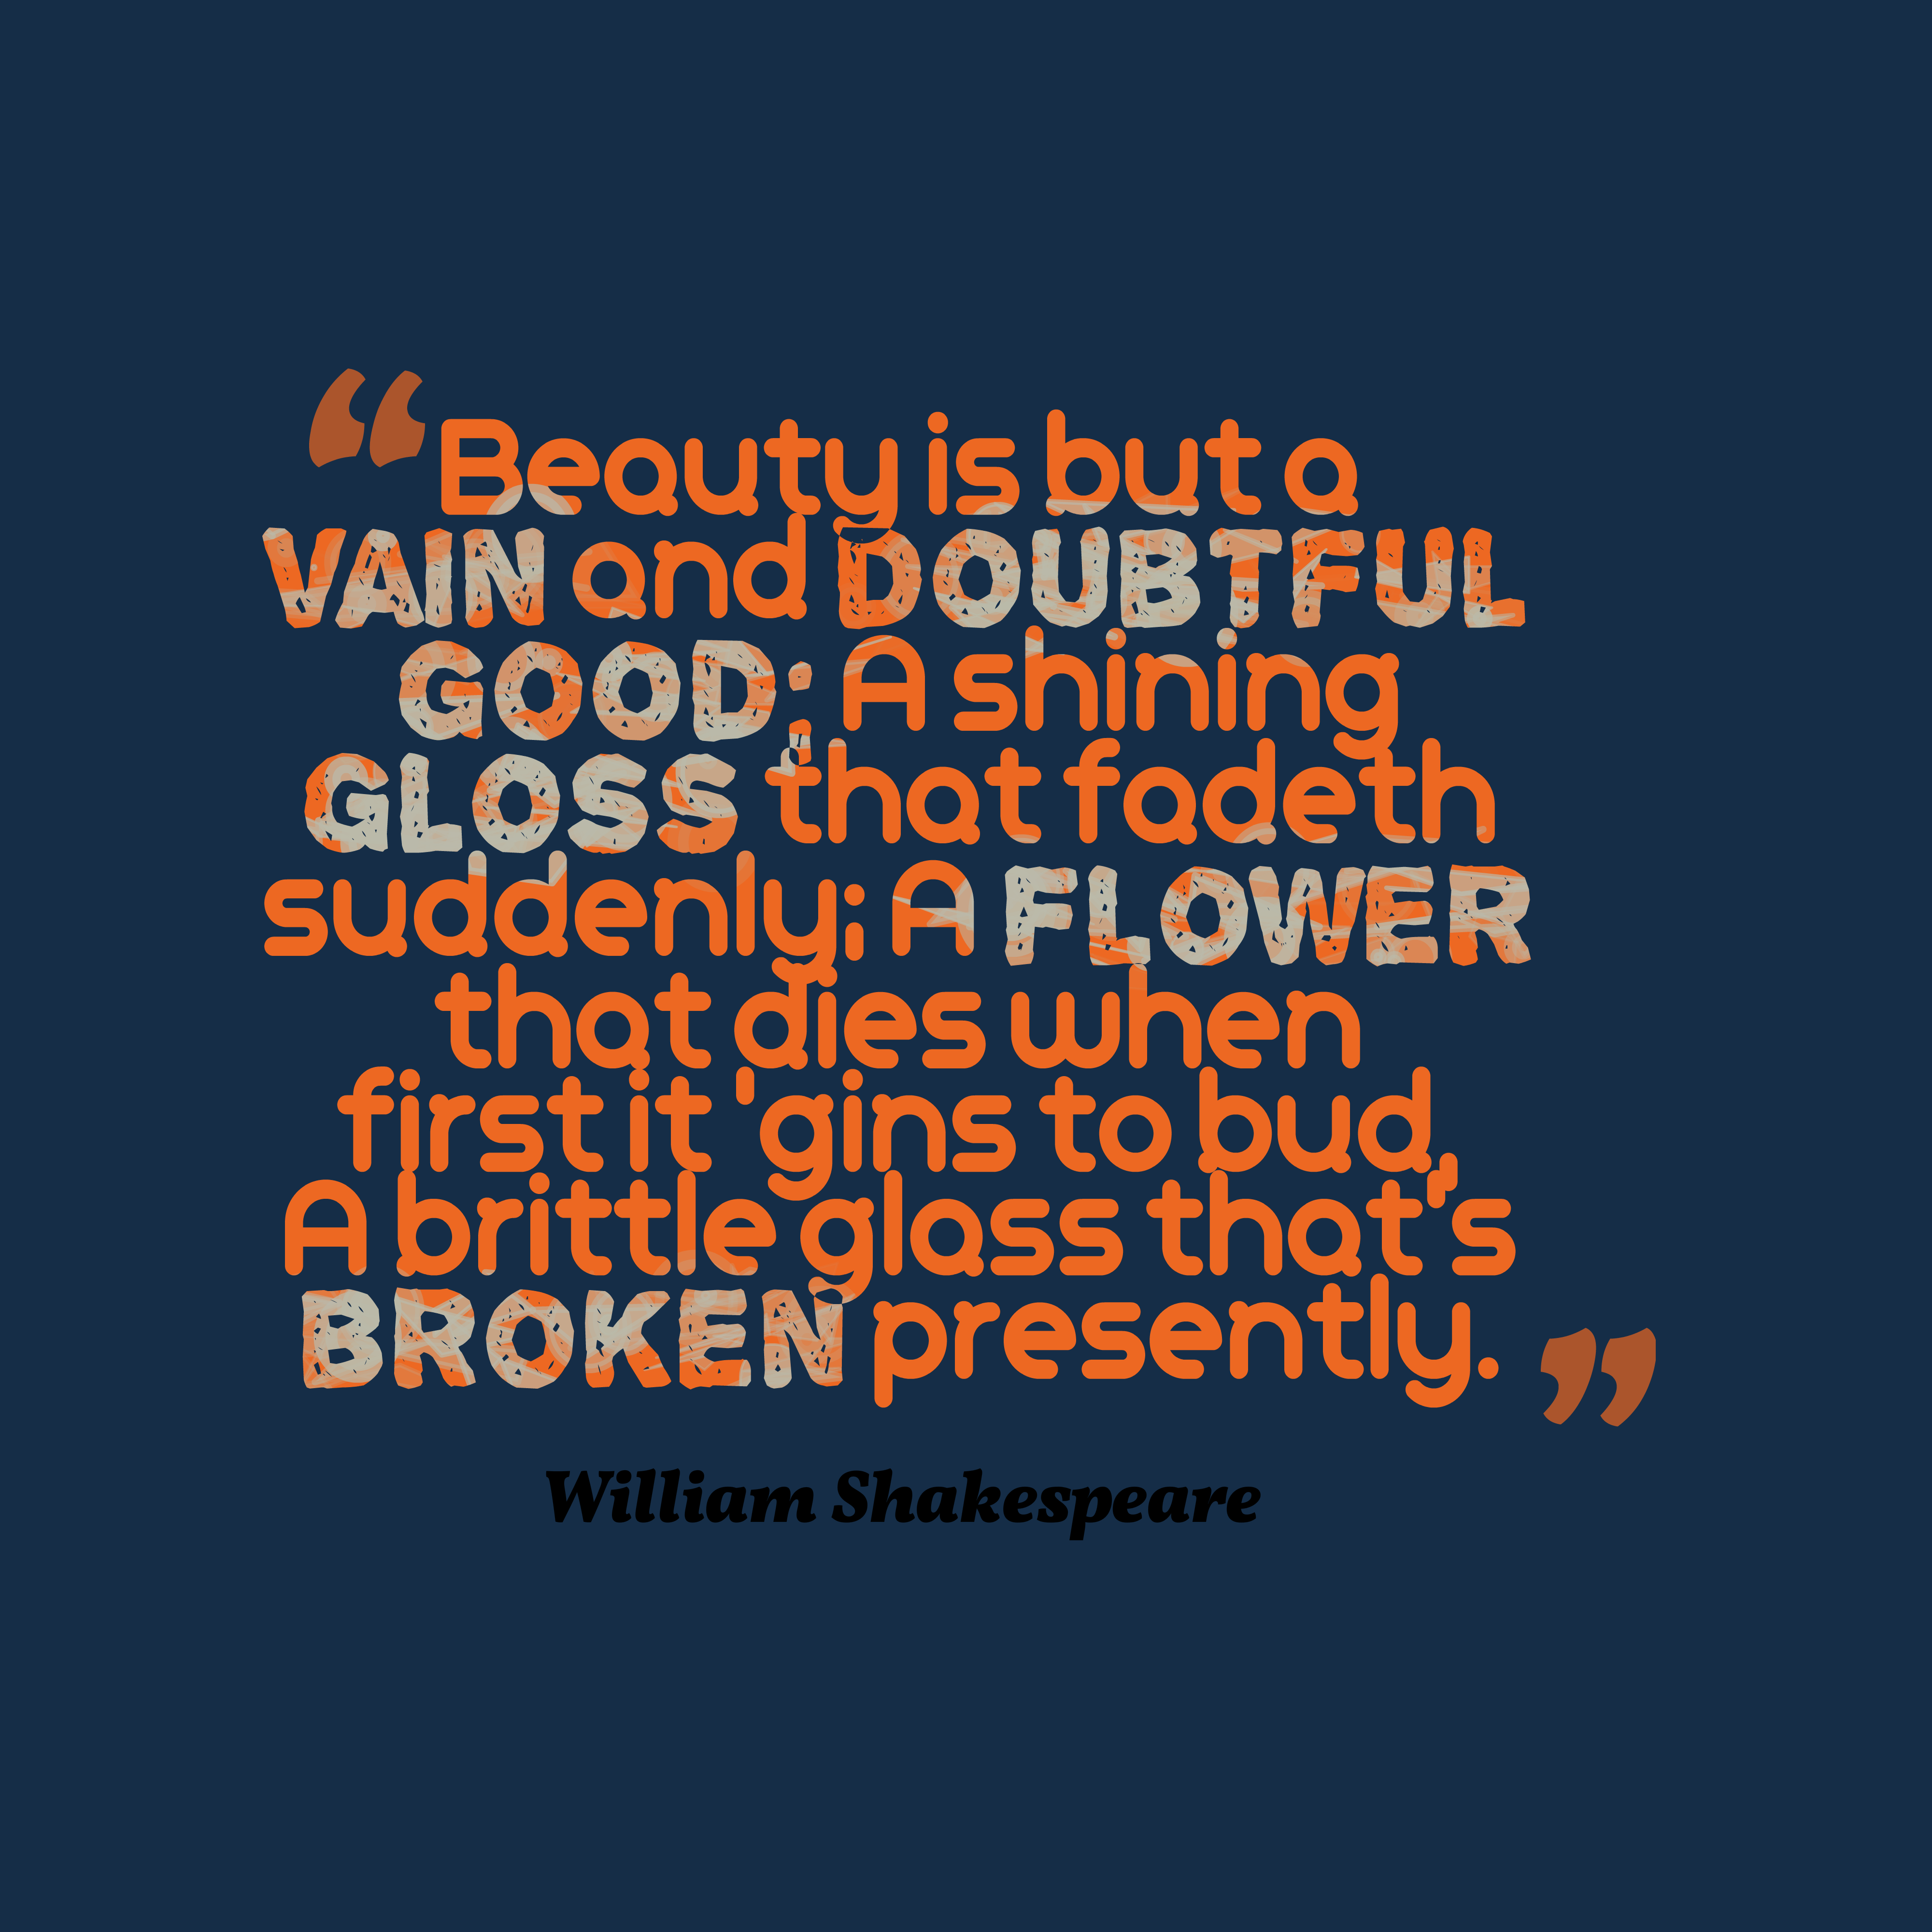 Download High Resolution Quotes Picture Maker From William